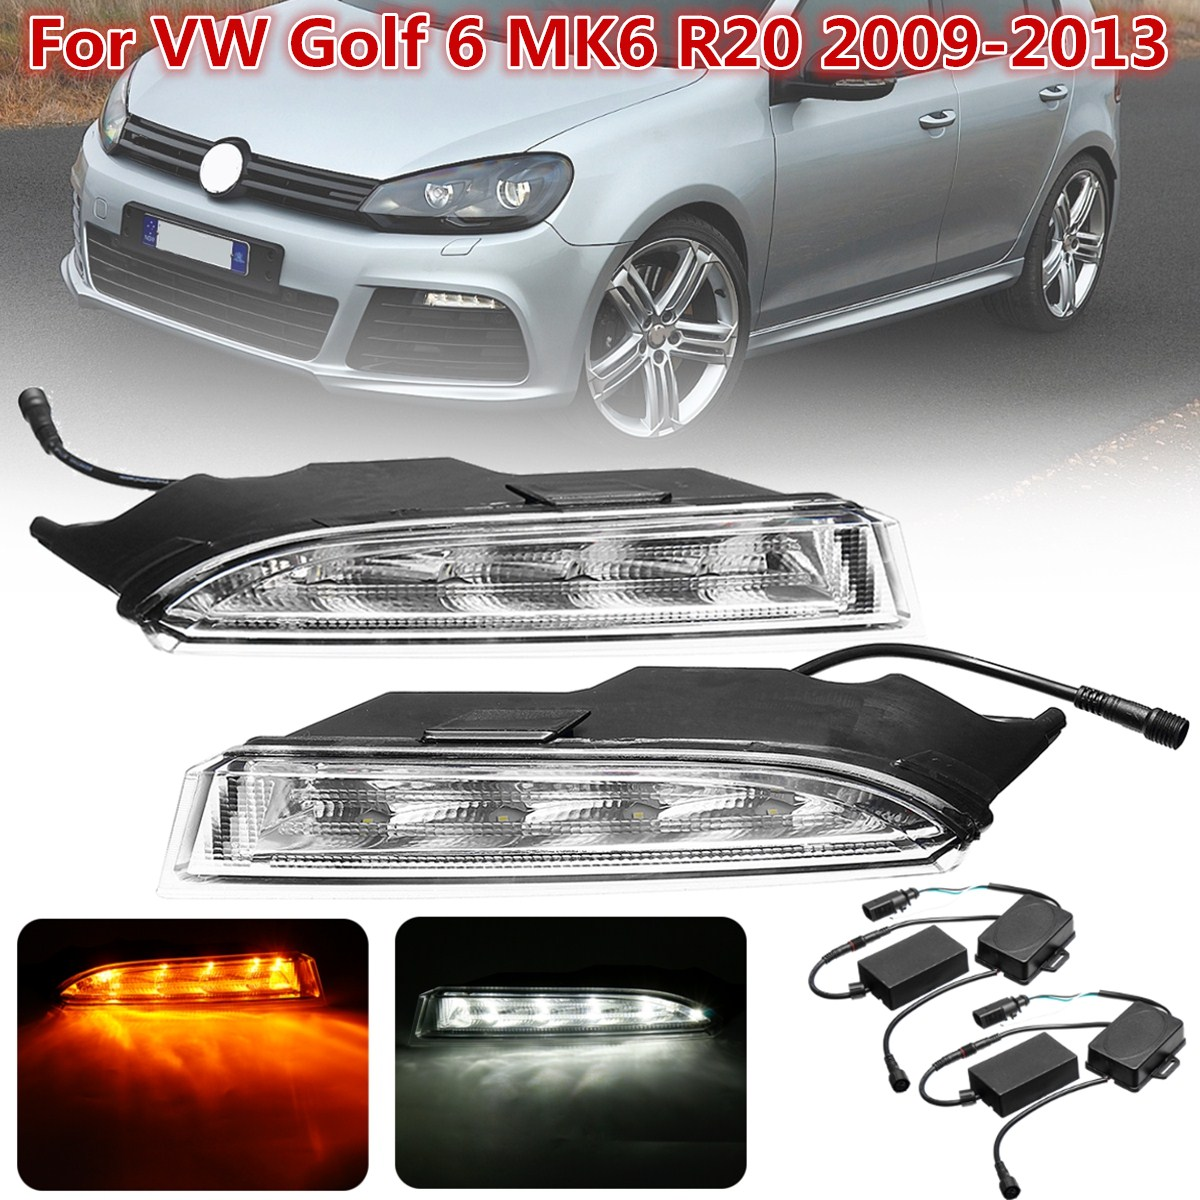 1 Pair Led Car-Styling Day Daytime Running Light Fog Light Lamp bumper lamp LED DRL For VW Golf 6 MK6 R20 2009 2010 2011~2013 1 set daytime running light drl led fog lamp fit for2010 2011 2012 bmw e90 lci 3 series 328 335 car styling led day light